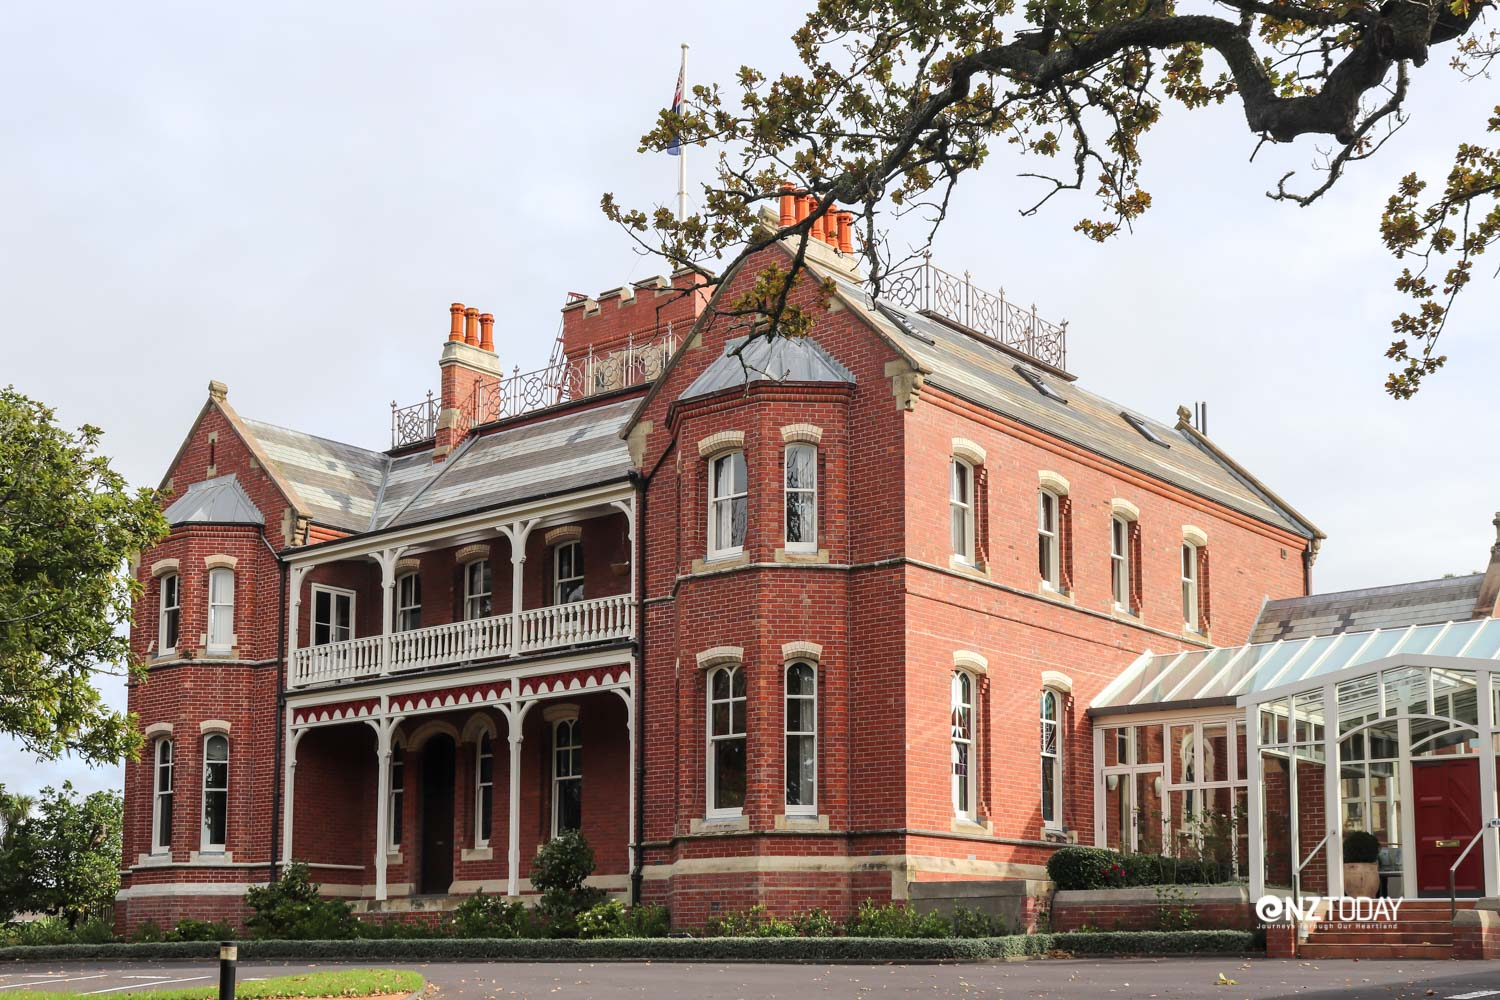 The Bishop's Palace - home of the Auckland Catholic Bishop